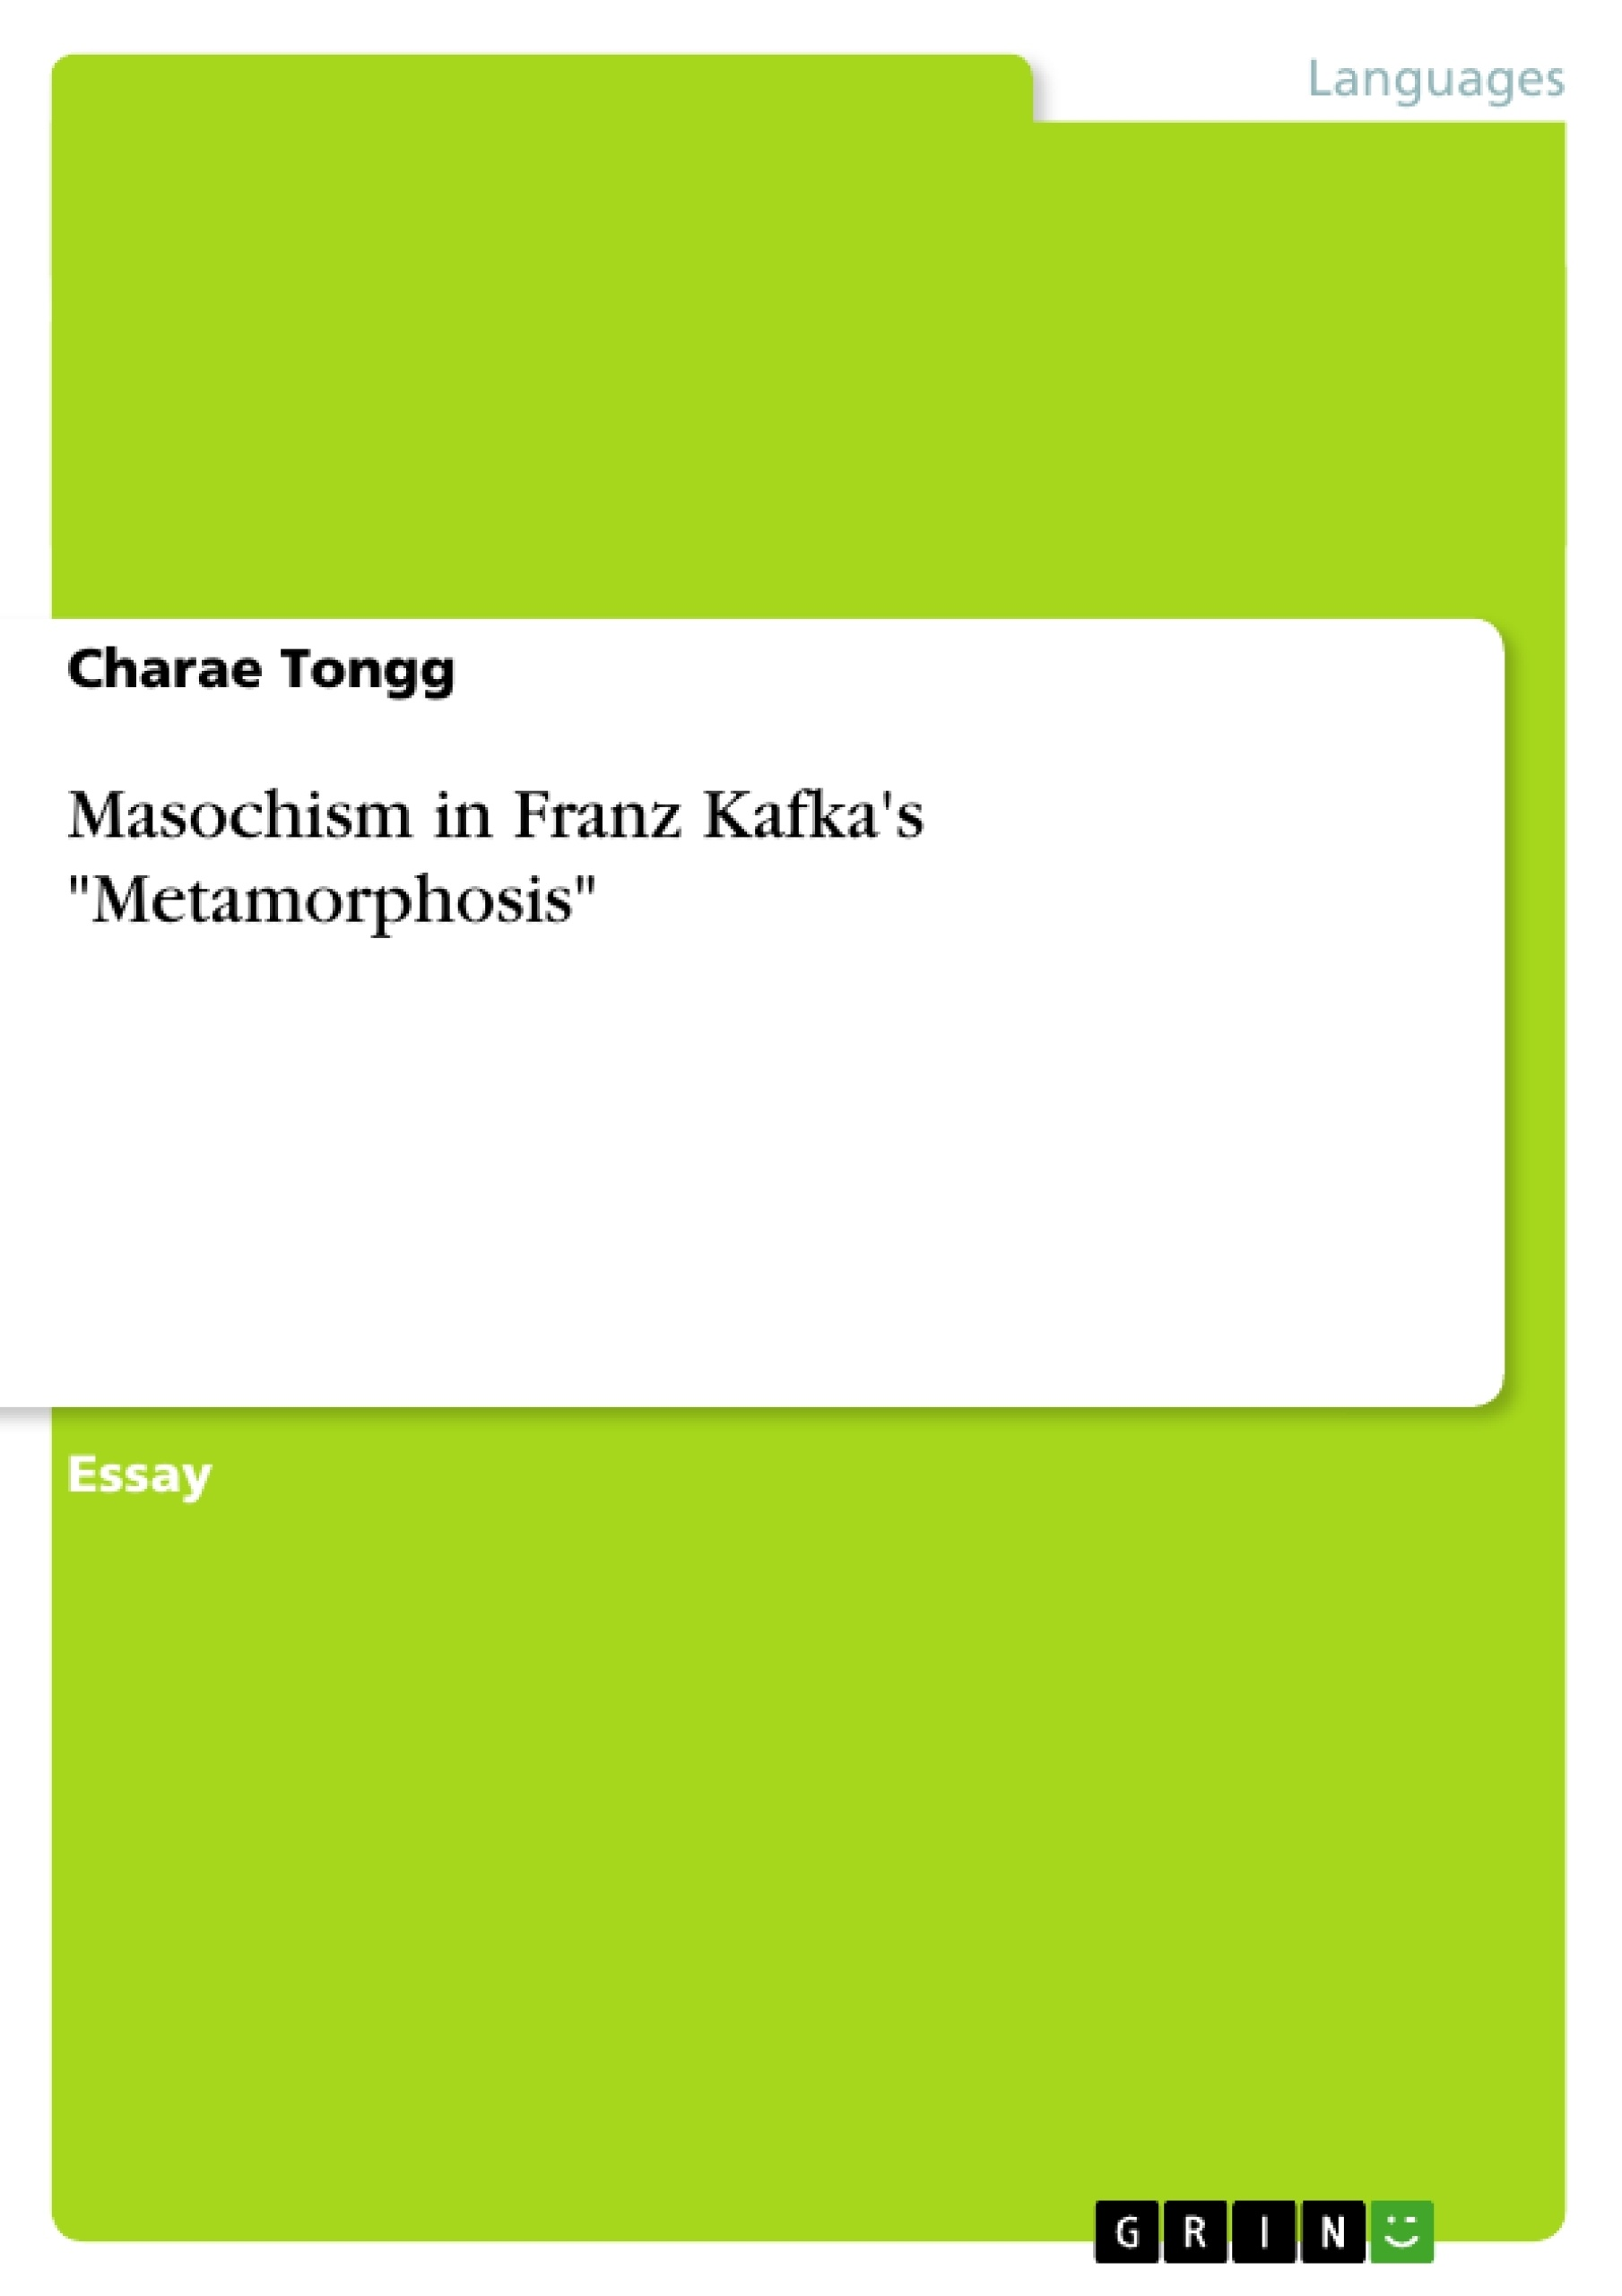 masochism in franz kafka s metamorphosis publish your master s masochism in franz kafka s metamorphosis publish your master s thesis bachelor s thesis essay or term paper